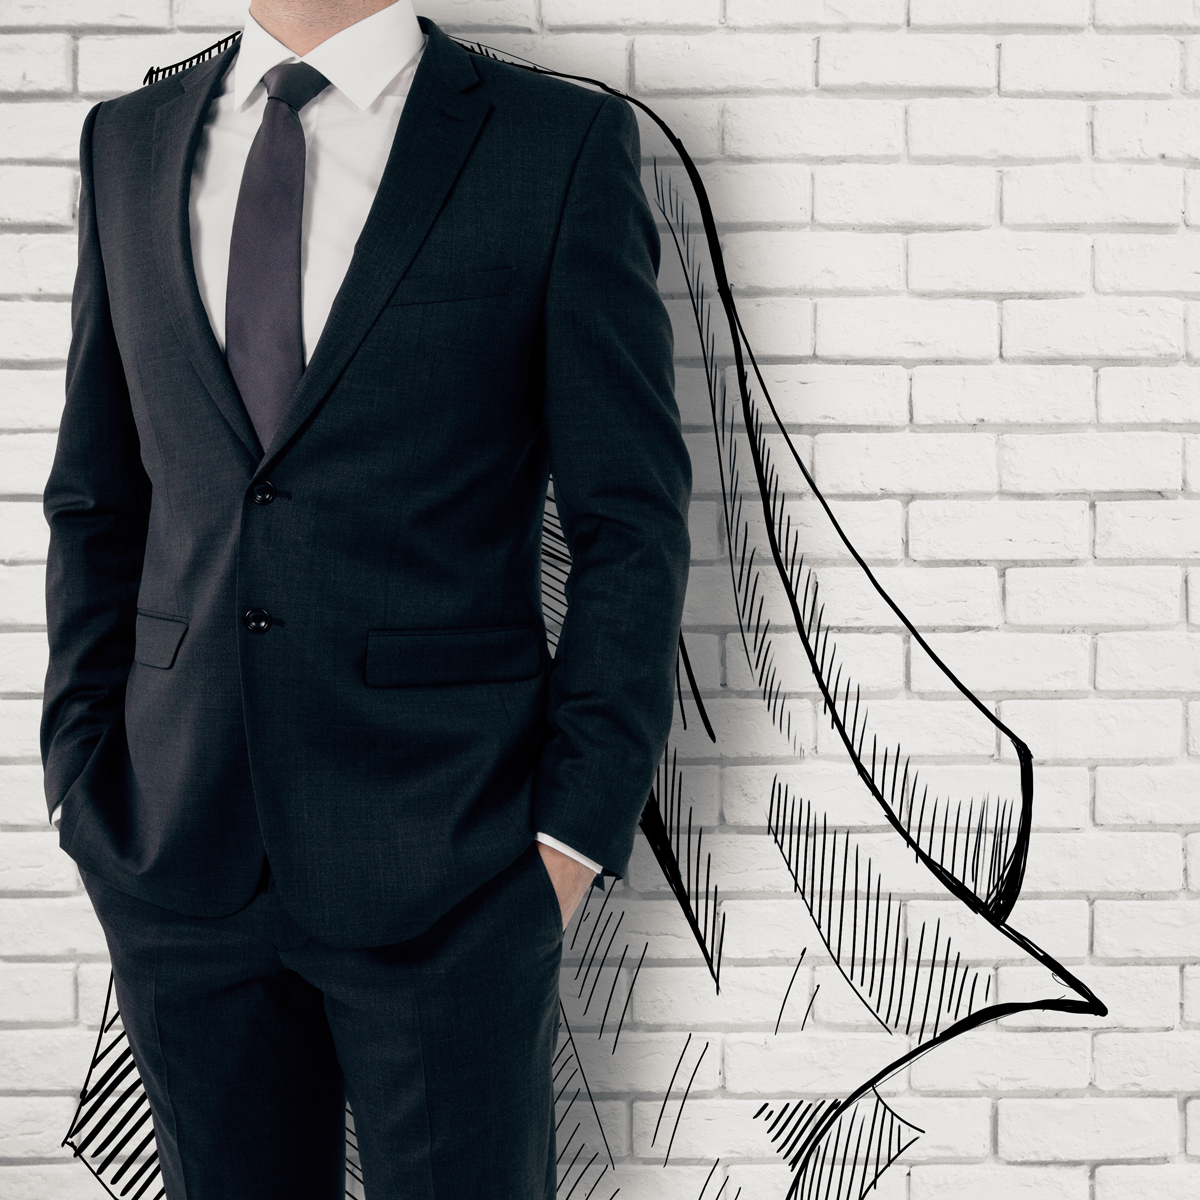 Tips To An Excellent Personal Brand